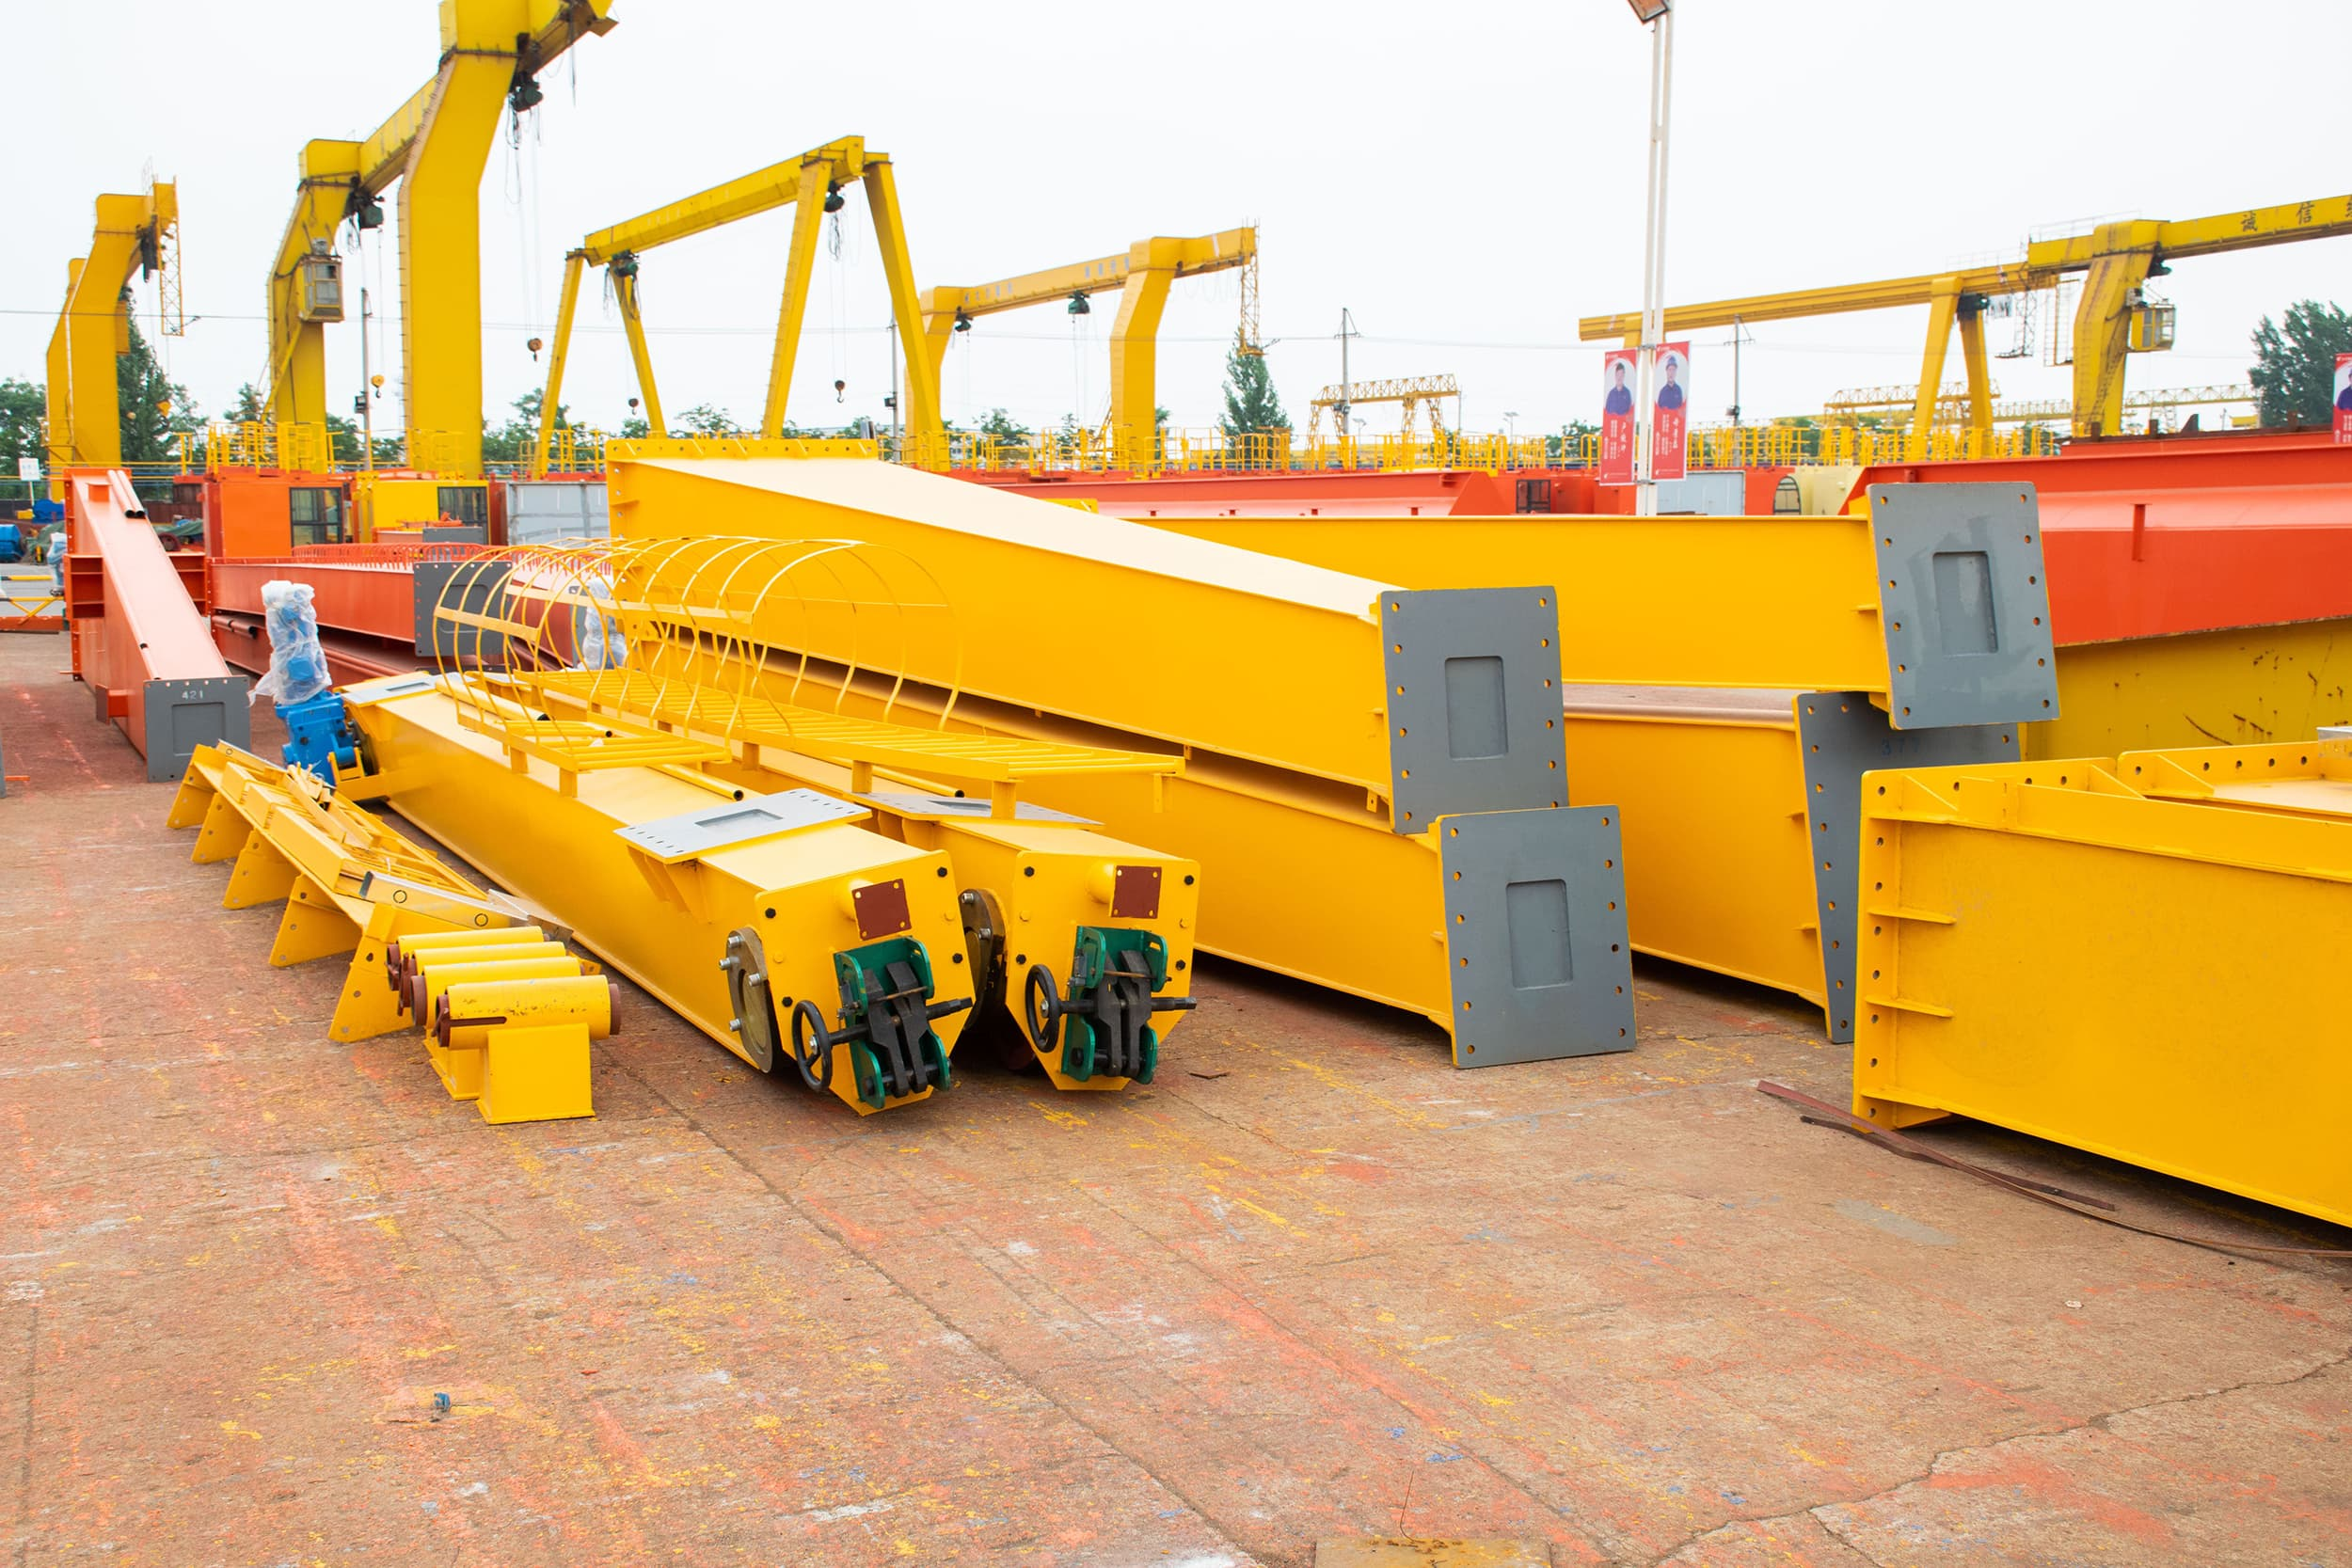 Support legs and Ground beams of sets of MGTT European type double girder gantry cranes